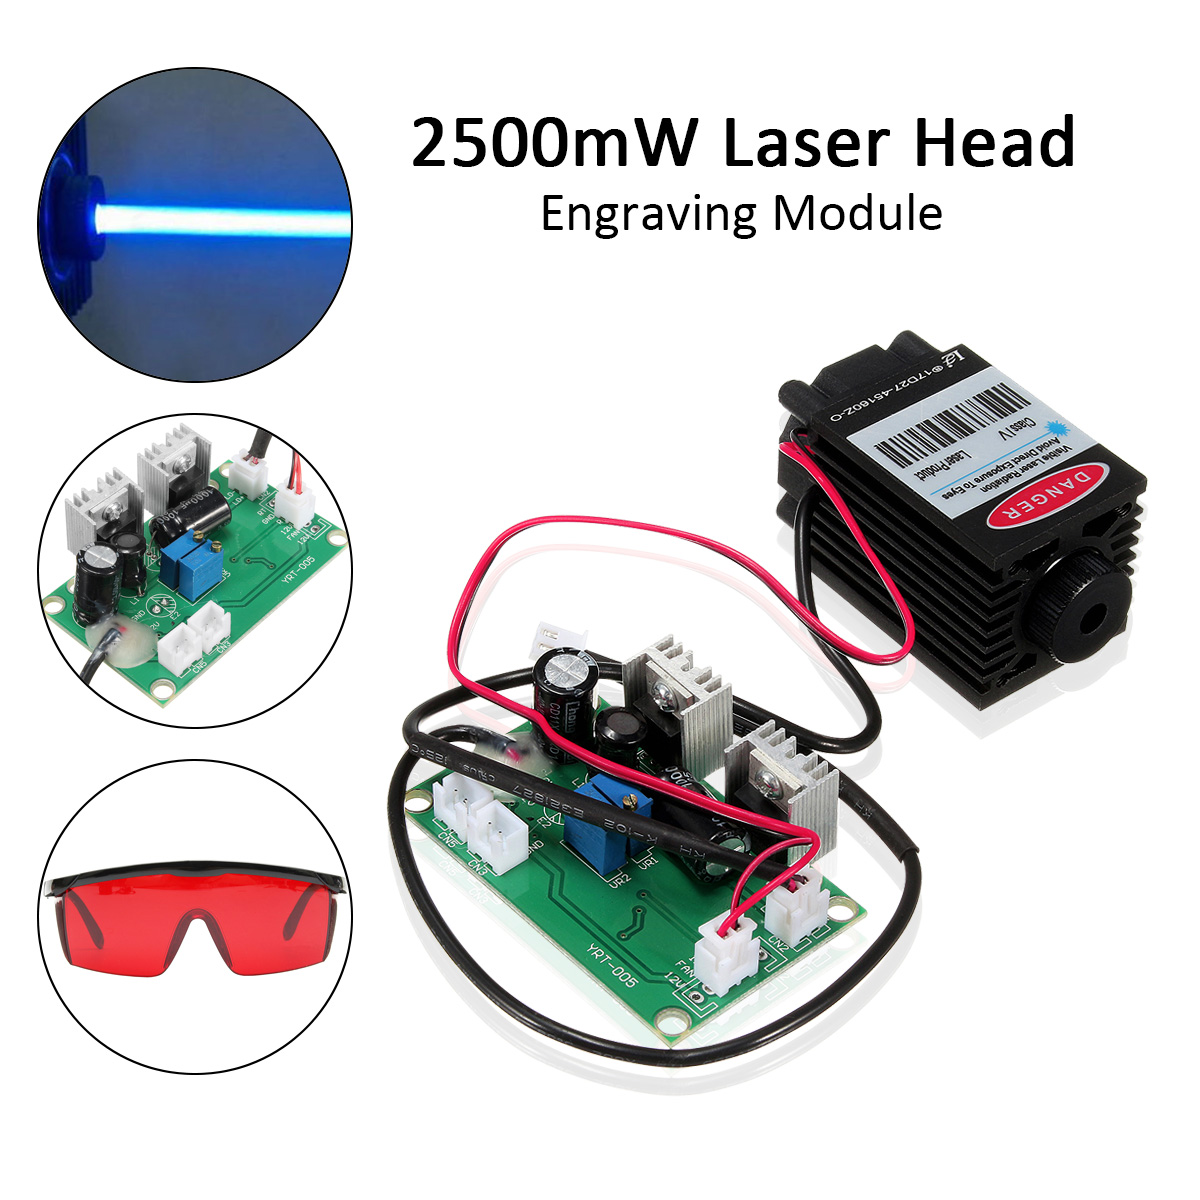 450nm 2500mW High Power Focusing Blue Laser Module TTL 12V DIY CNC Cutting Laser Engraver Accessories 2.5W + Goggles tgleiser 450nm 5 5w 12v laser module diy cnc engraver wood cutting machine blue 5500mw power supply knob dimming laser diode